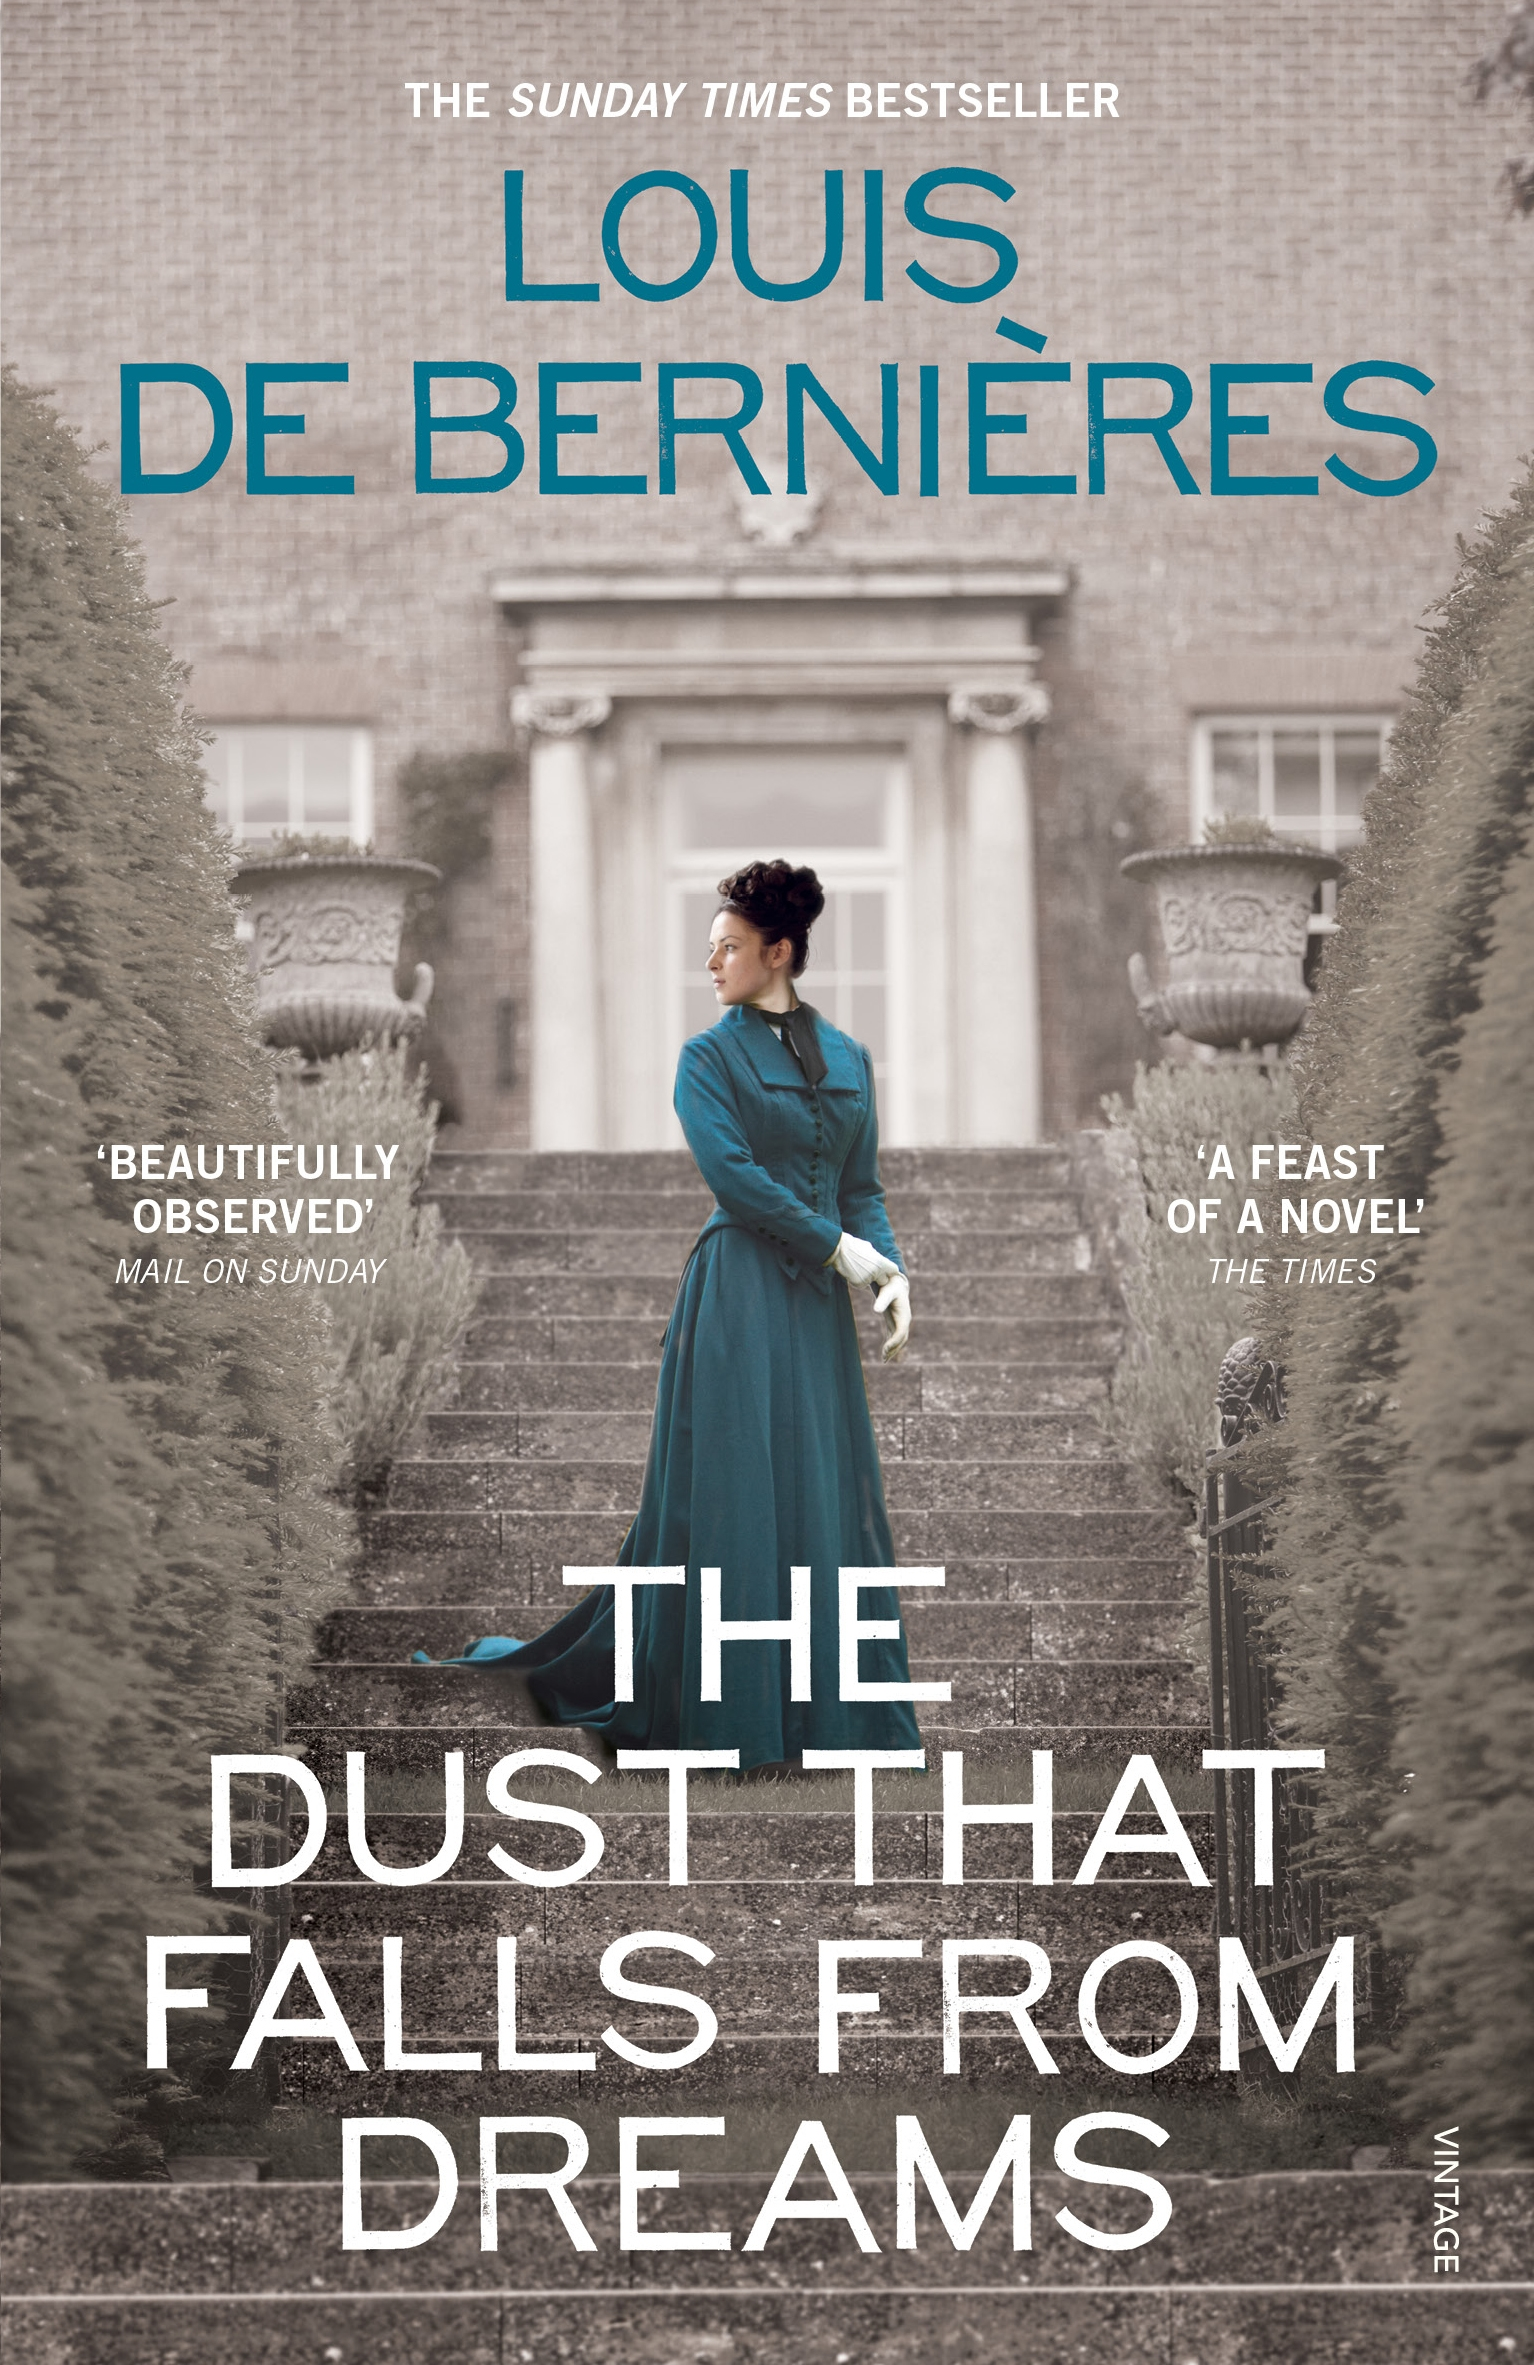 The Dust that Falls from Dreams by Louis de Bernieres, ISBN: 9781473511408